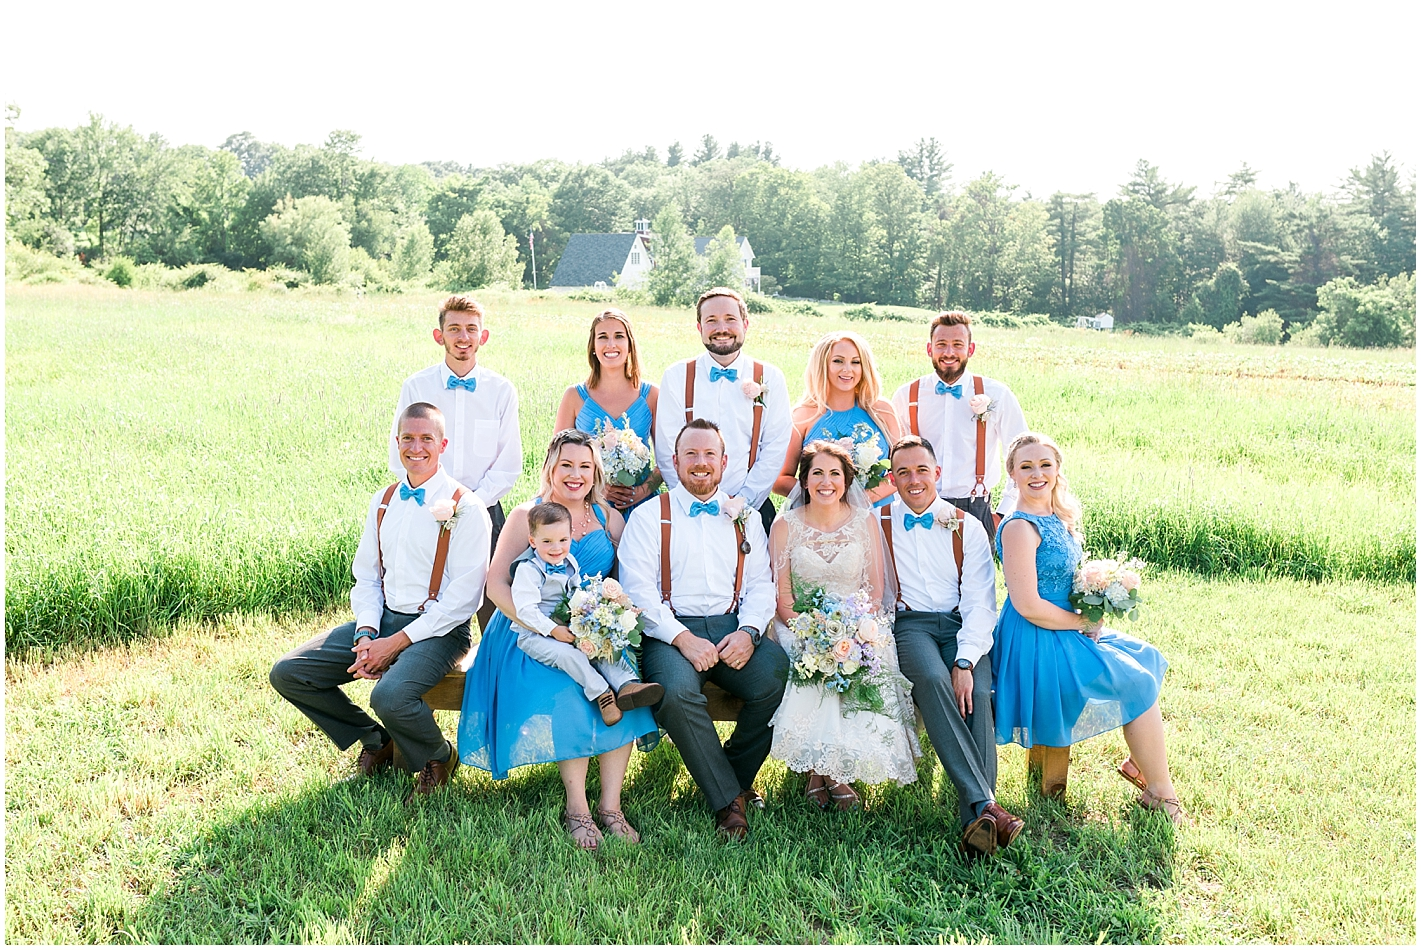 Alice and Wonderland Themed Wedding Party Photos by Alyssa Parker Photography